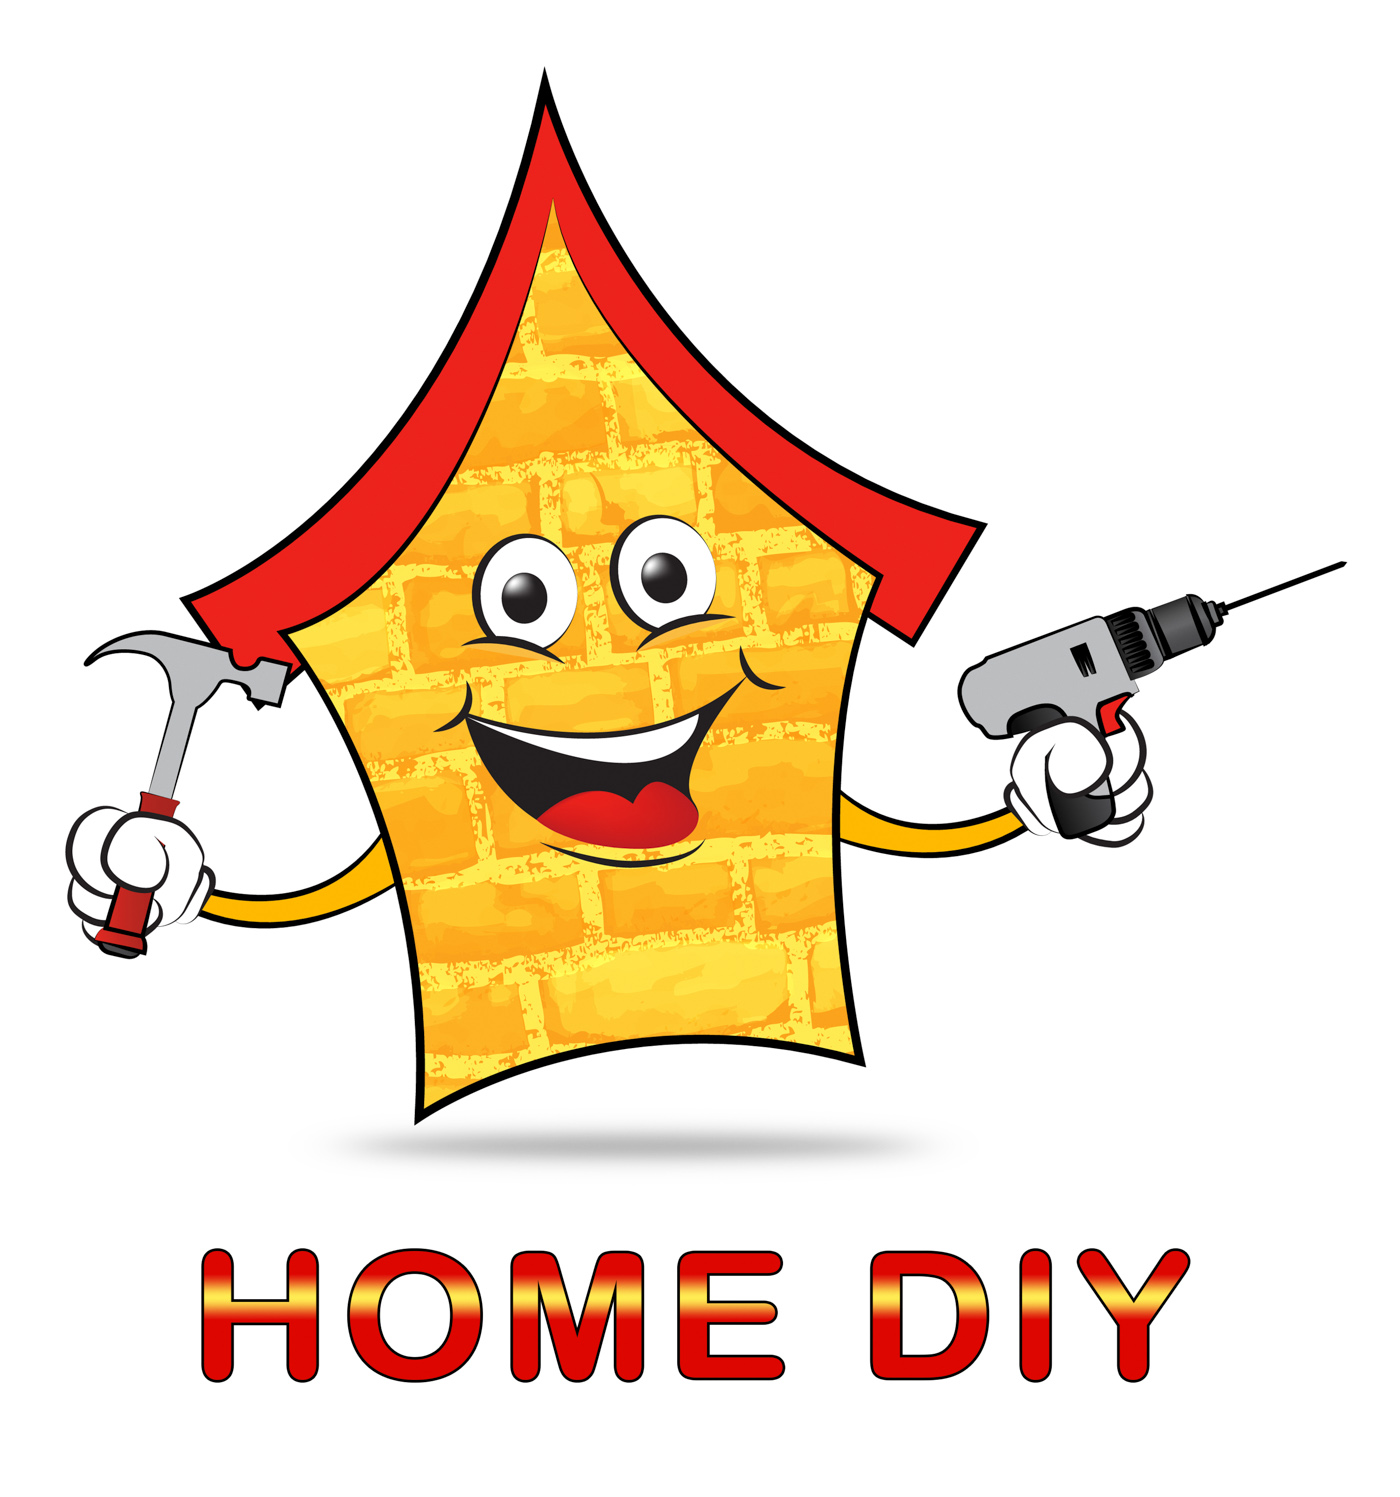 Home diy represents do it yourself home photo